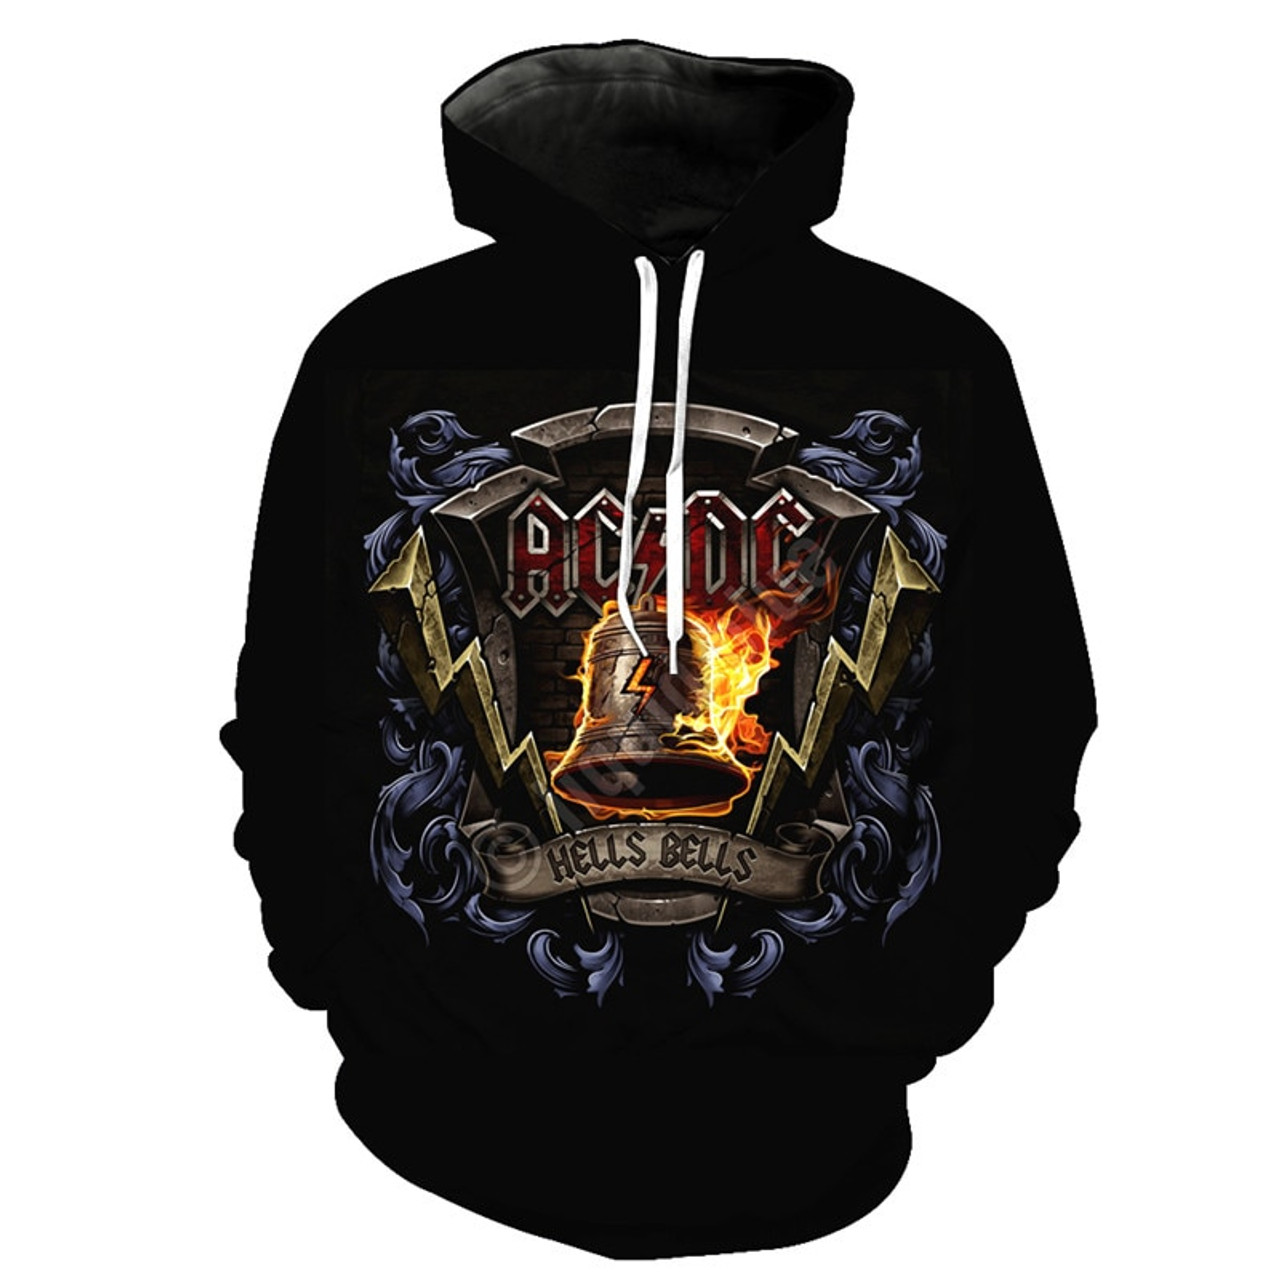 **(OFFICIALLY-LICENSED-AC/DC-CLASSIC-ROCK-BAND-AC/DC & OFFICIAL-HELLS-BELLS-3D-GRAPHIC-PRINTED-LOGO-DESIGN/NICE-WARM-PREMIUM-PULLOVER-HOODIES)**